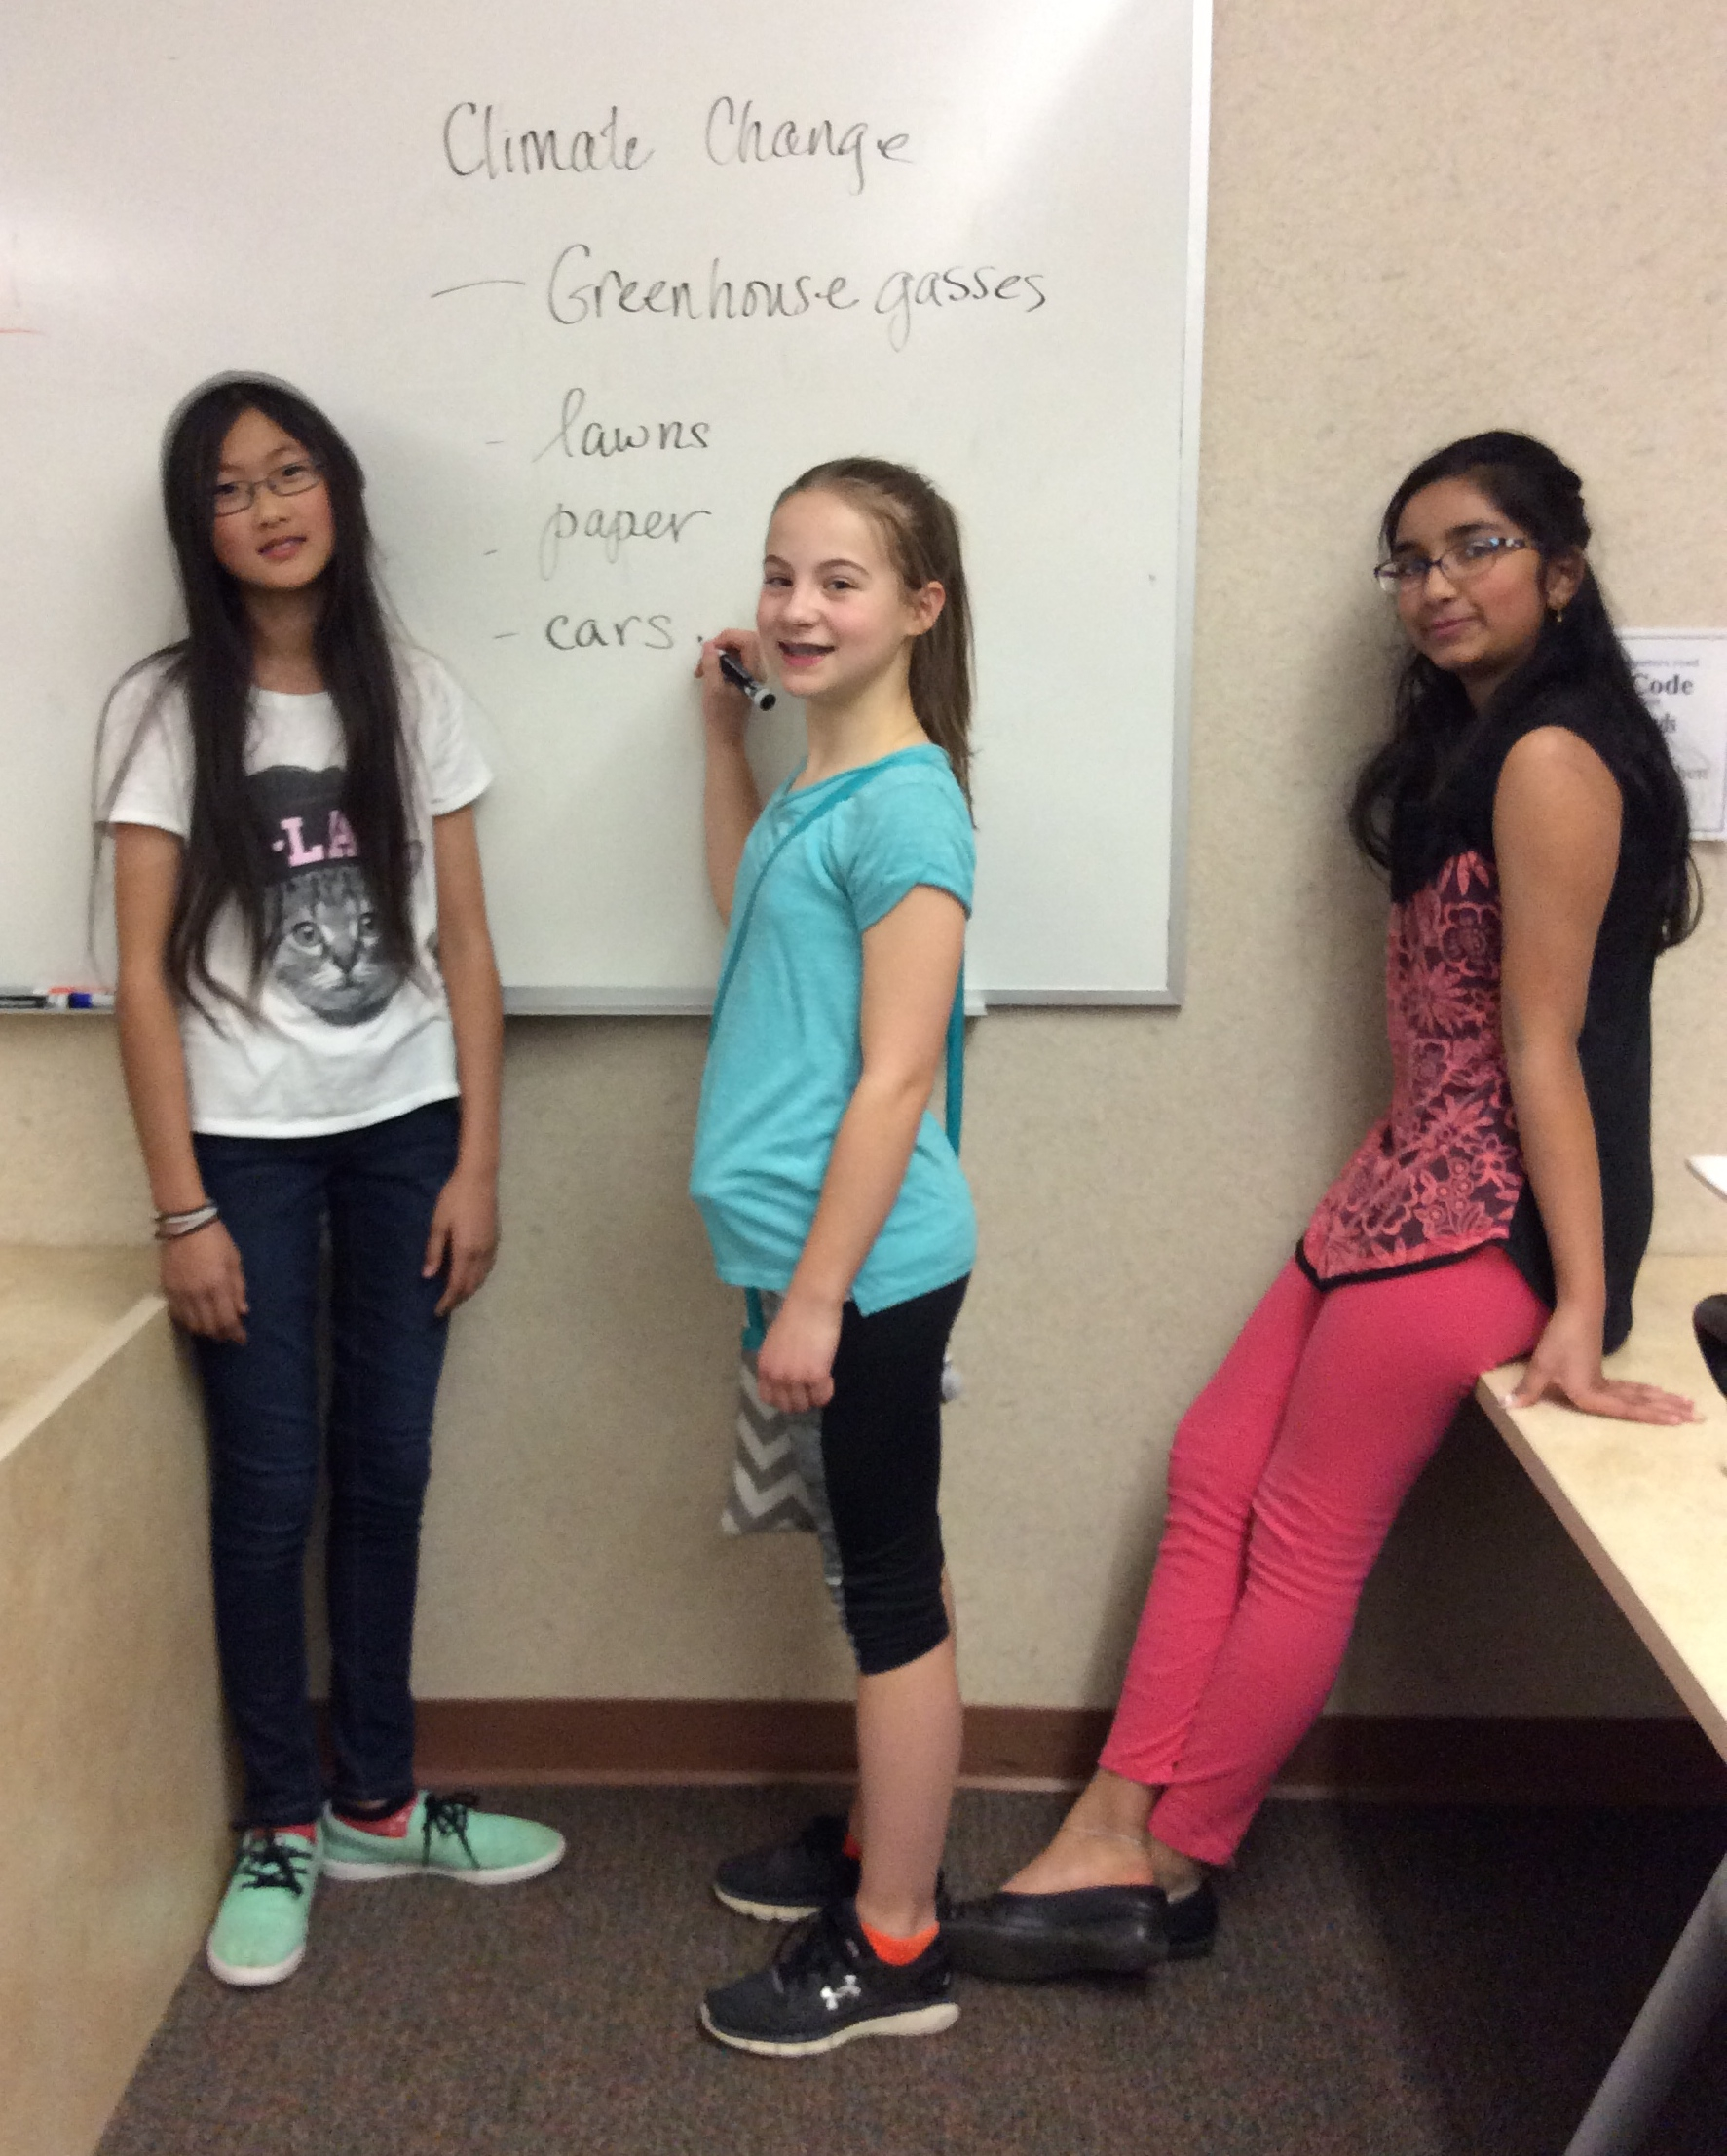 The Girls Code 4 Climate Contest winners brainstorming video ideas